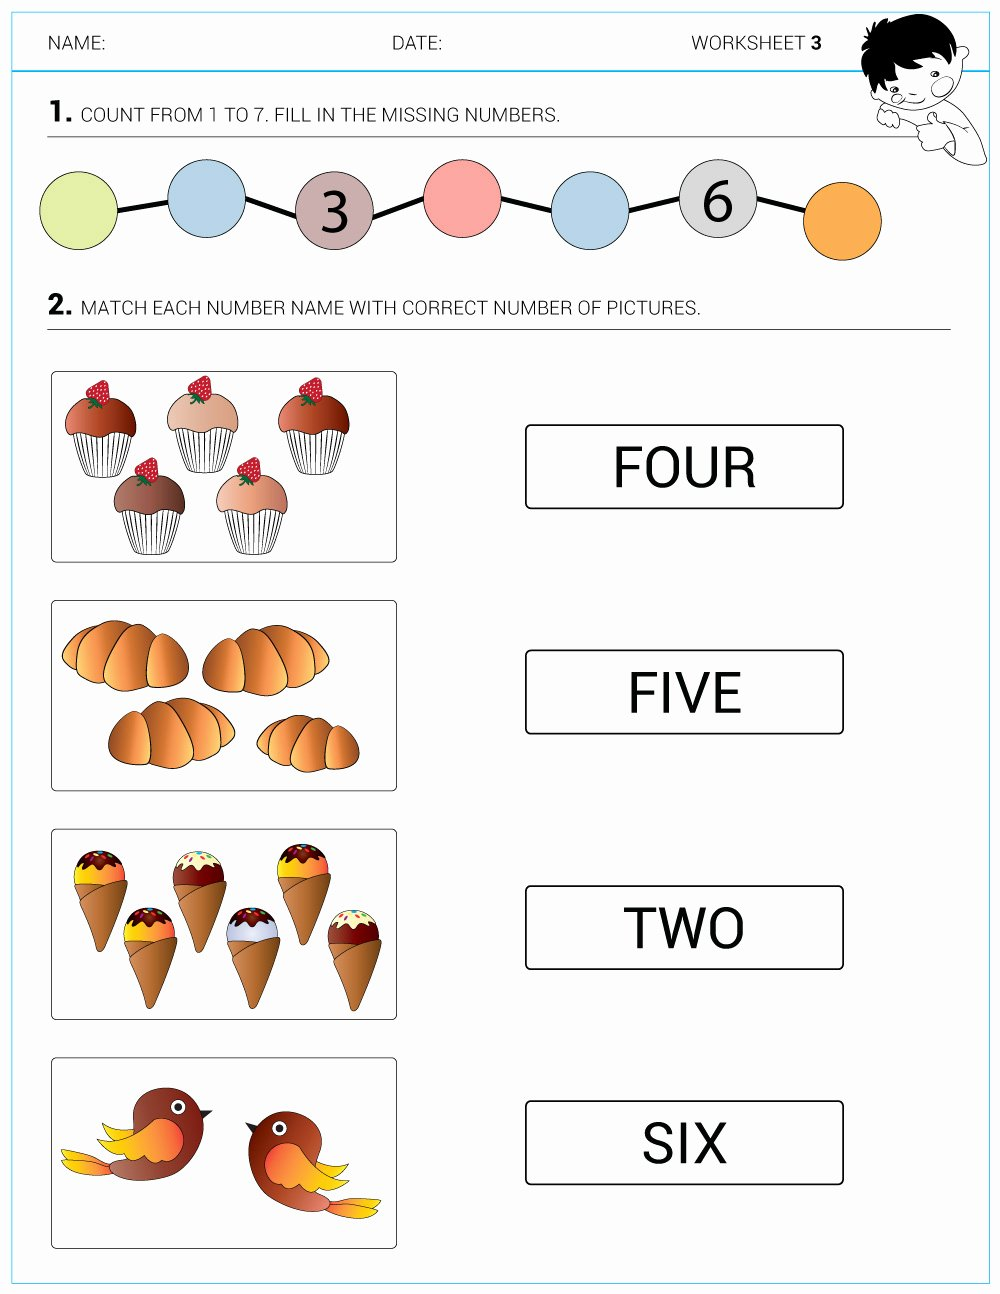 Math Concept Worksheets for Preschoolers Free Worksheets Kinder Mathsheetssheet Kindergarten Archives We